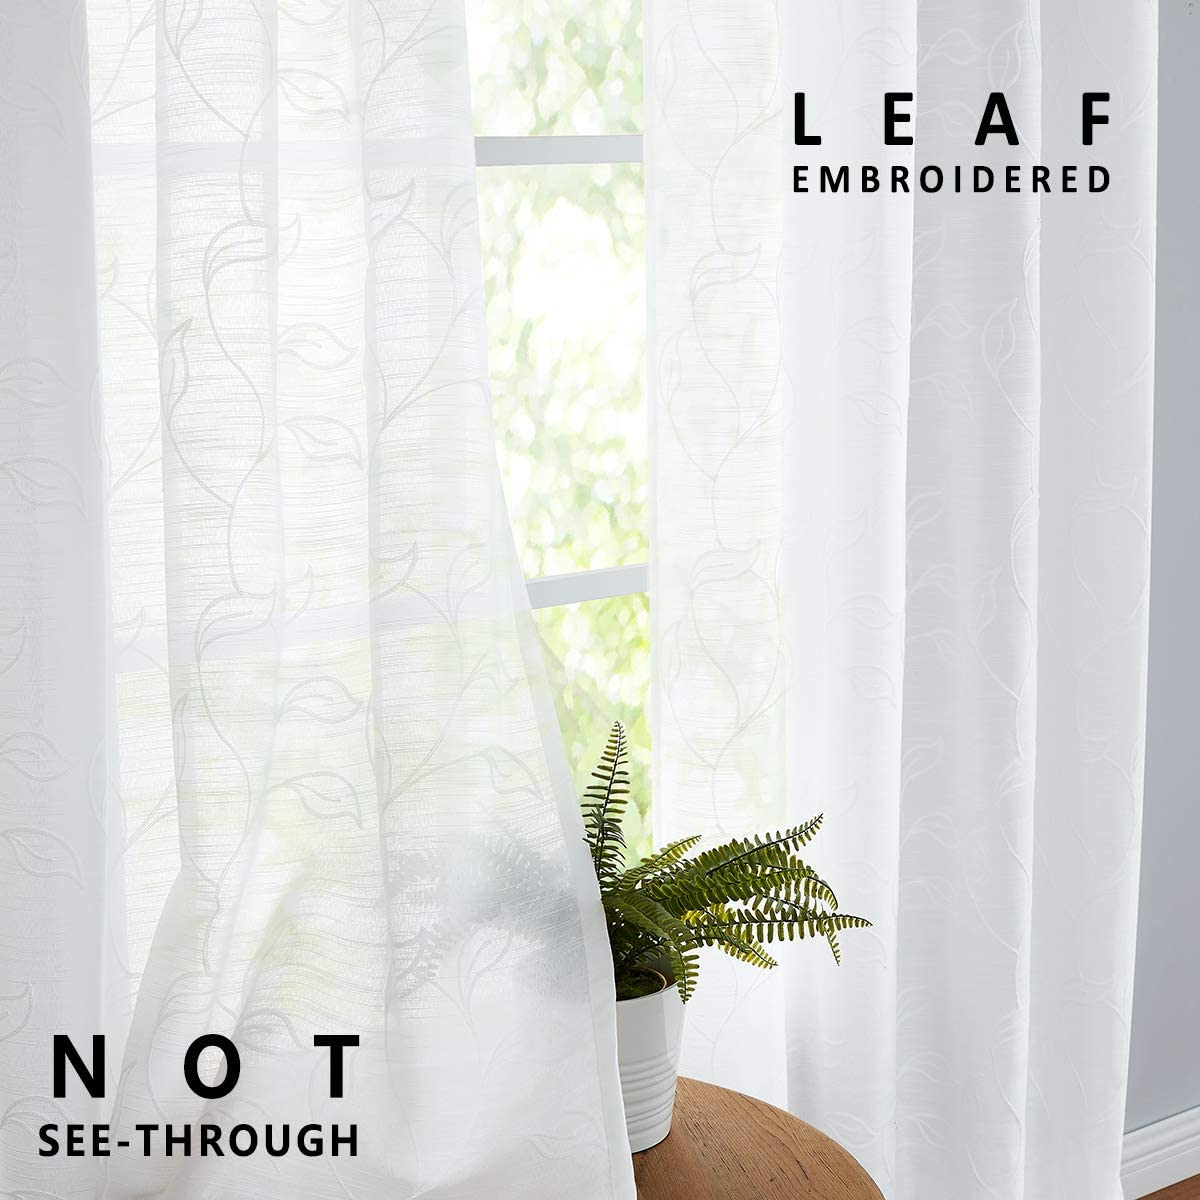 Embroidered Sheer White Curtains for Living Room 95 inches Long Leaf Window Curtain Draperies 2 Panels, Grommet Top